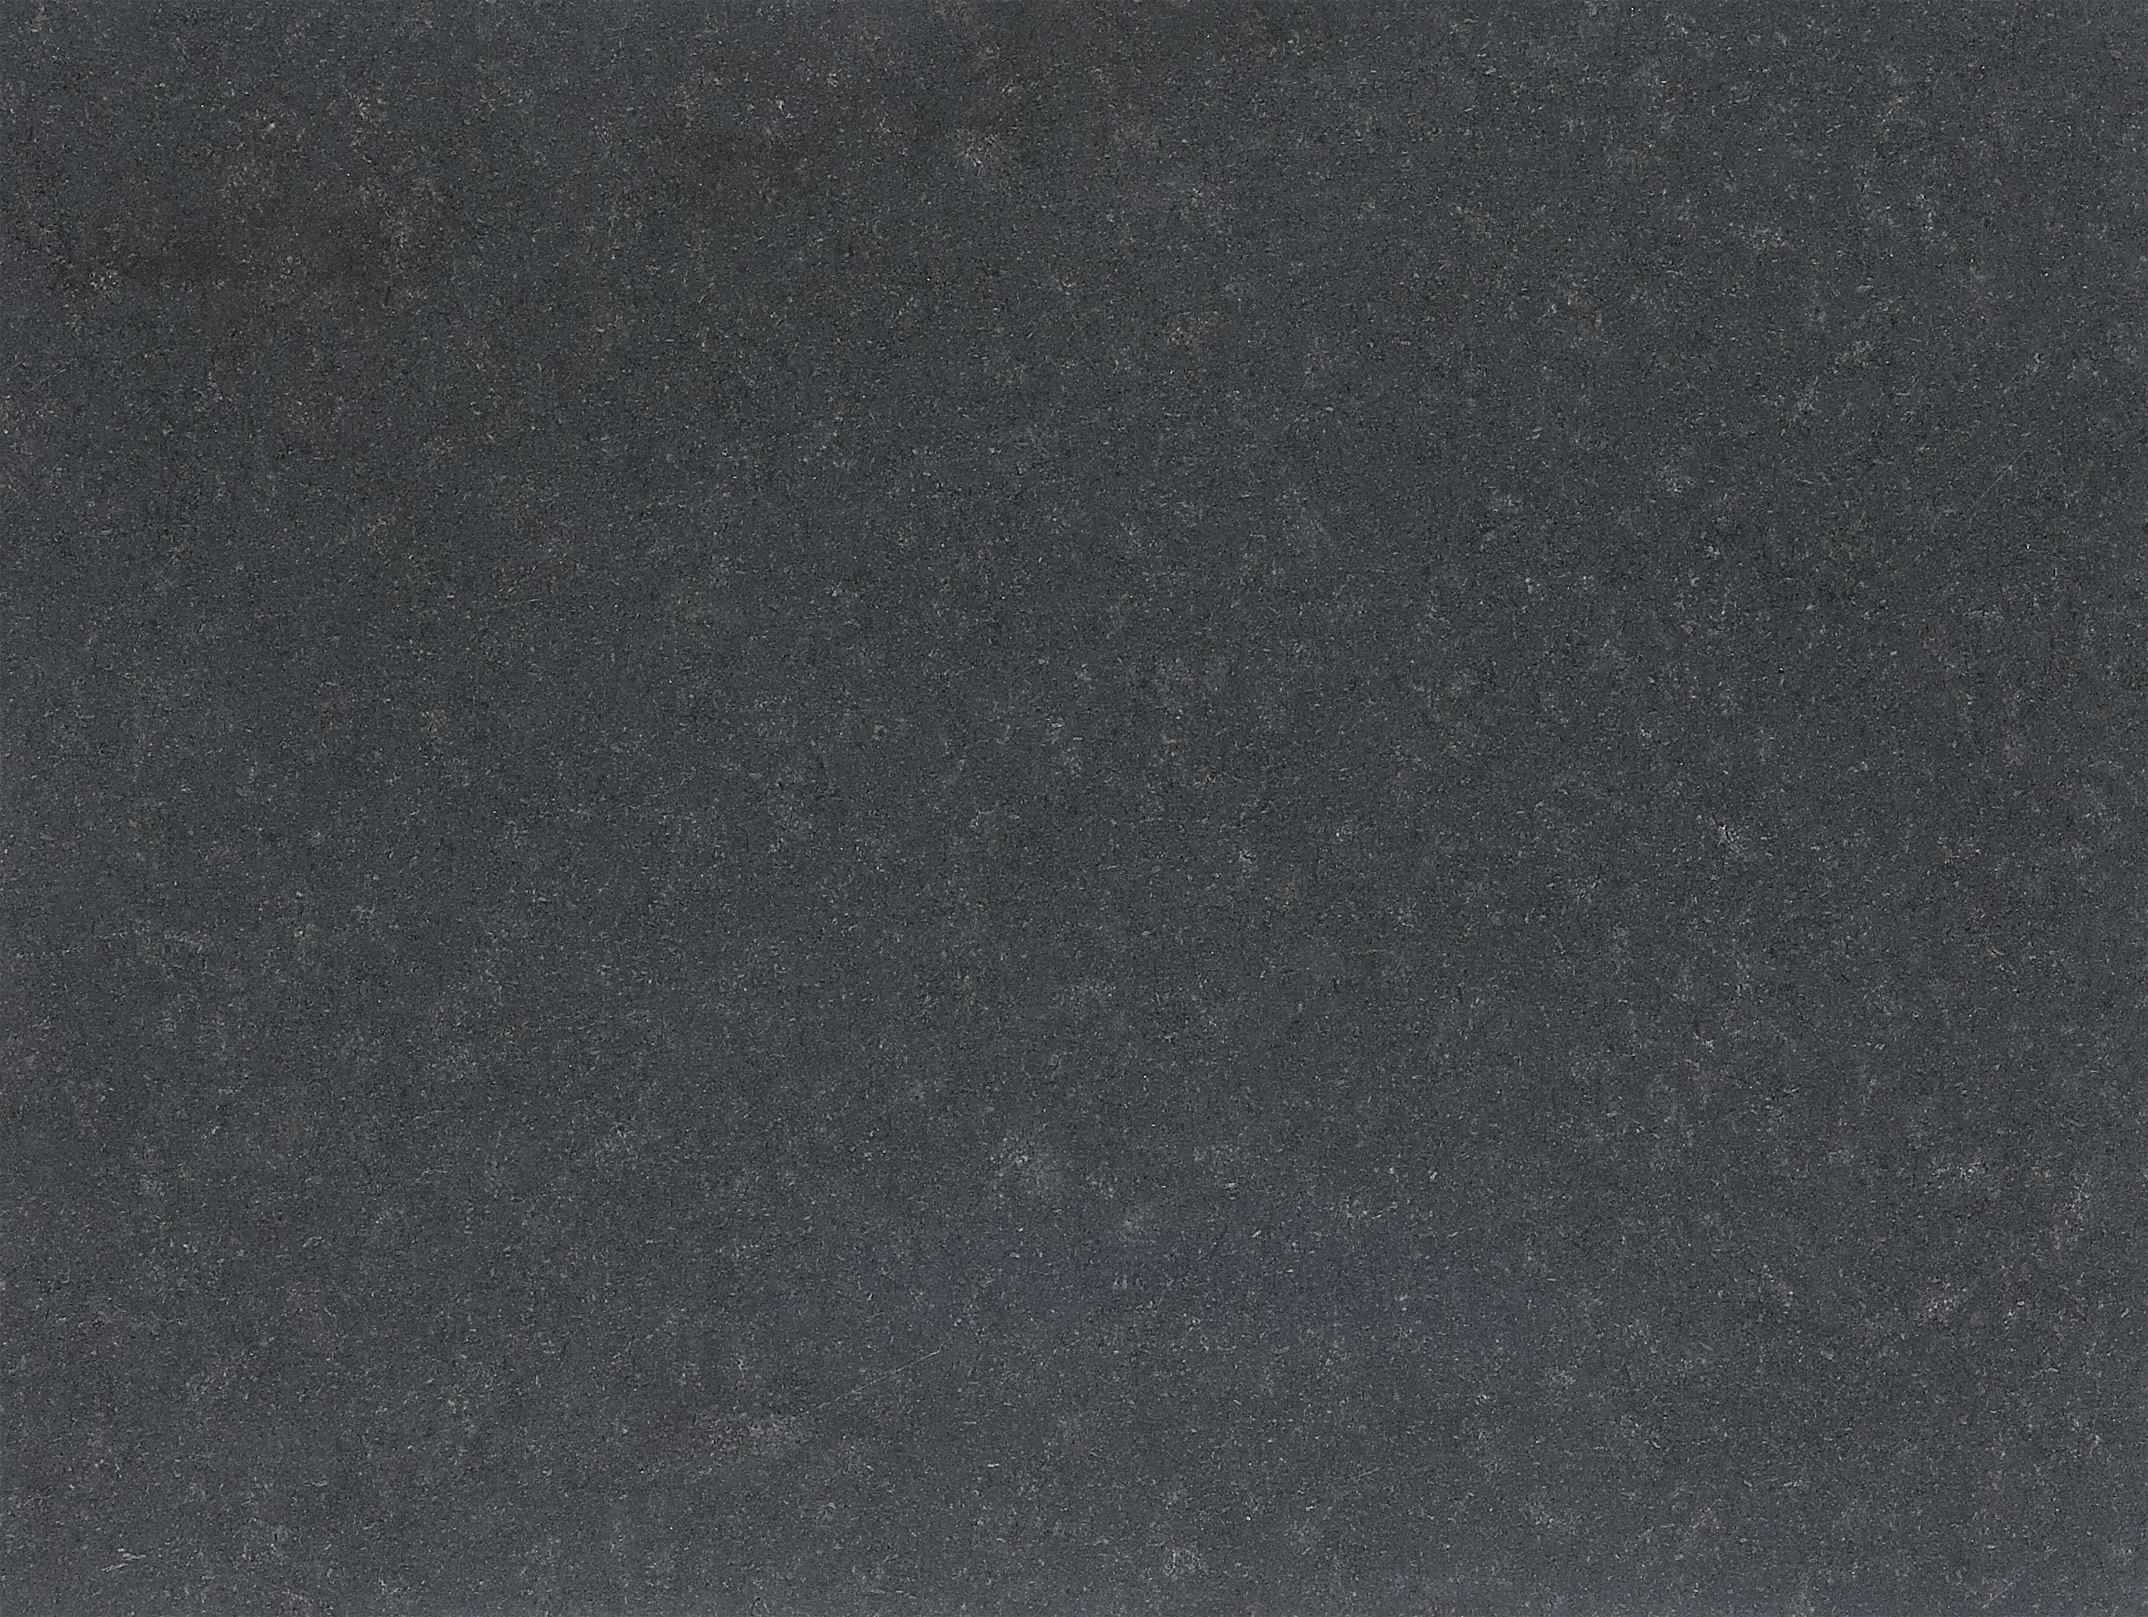 Granit Nero Nero Honed Granite Kitchen Worktops | Grosvenor Granite